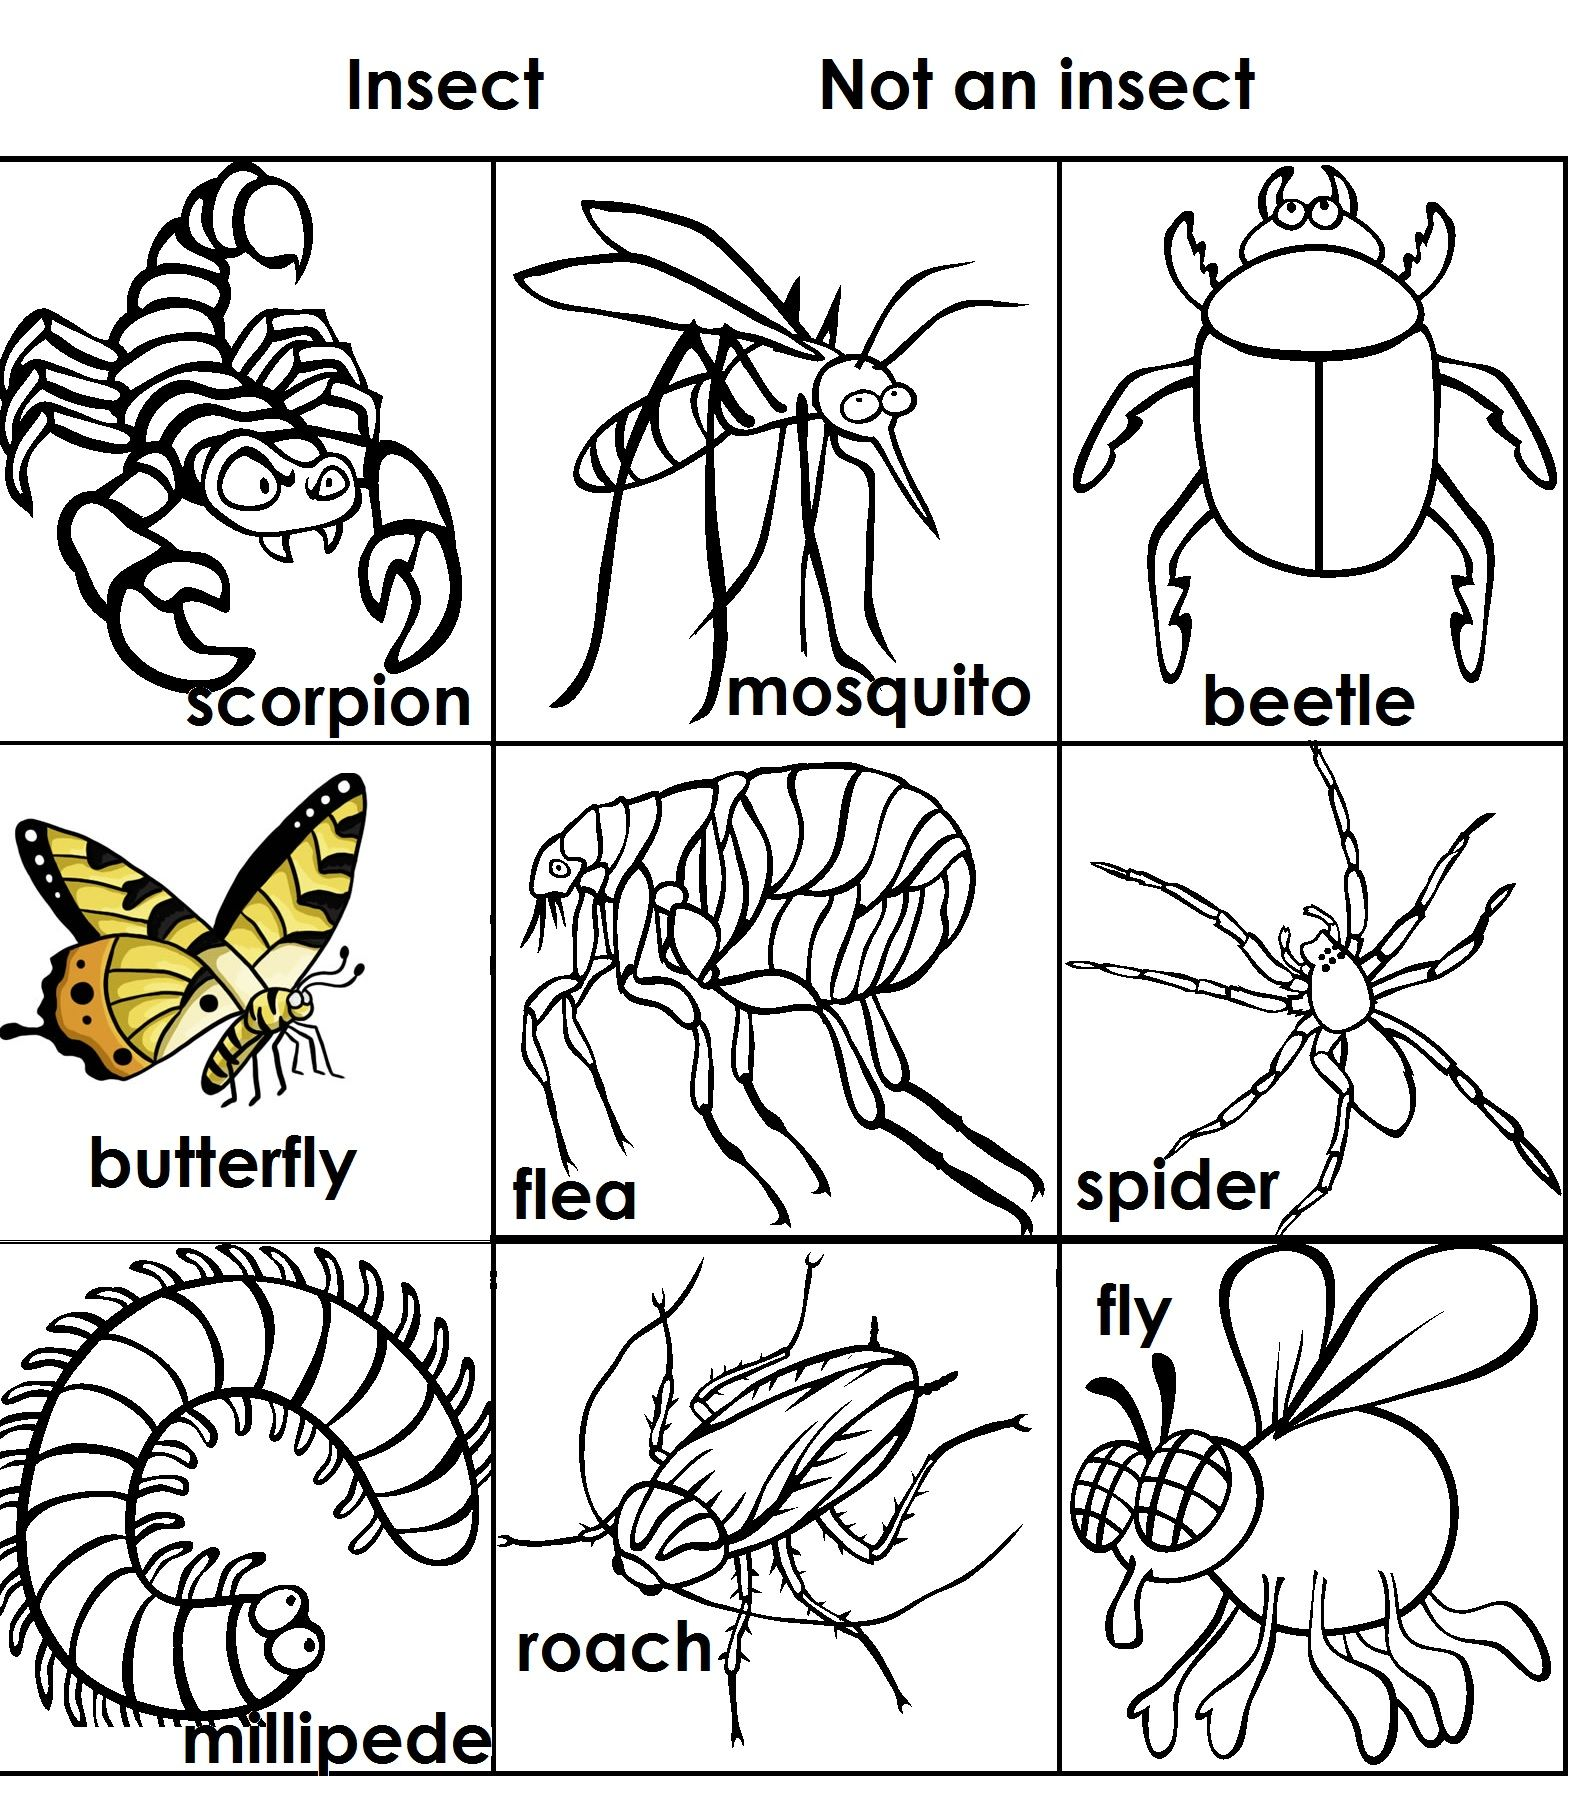 Insect Not Insect Sort